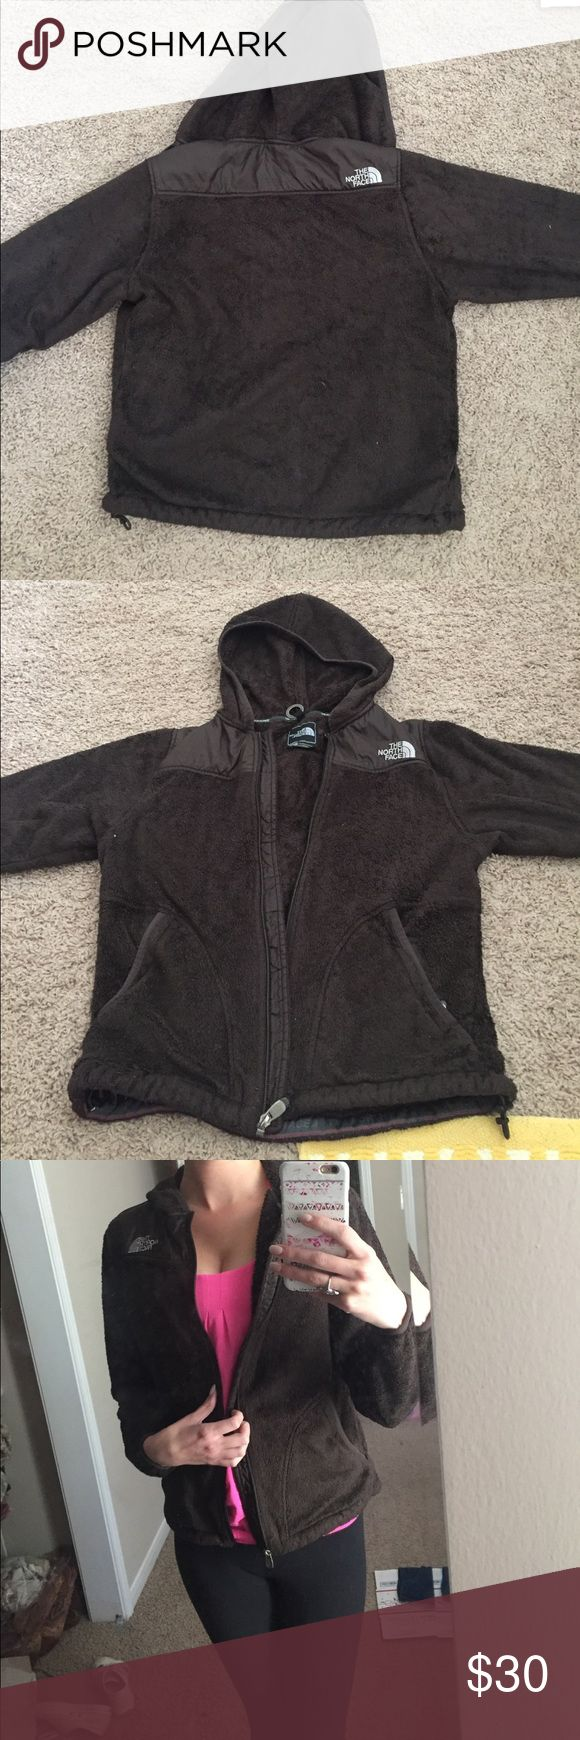 North face brown zip up hoodie This is a fabulous north face coat. It is warm and soft and in fairly good condition. The fur looks worn, but there are no stains or damage. North Face Jackets & Coats